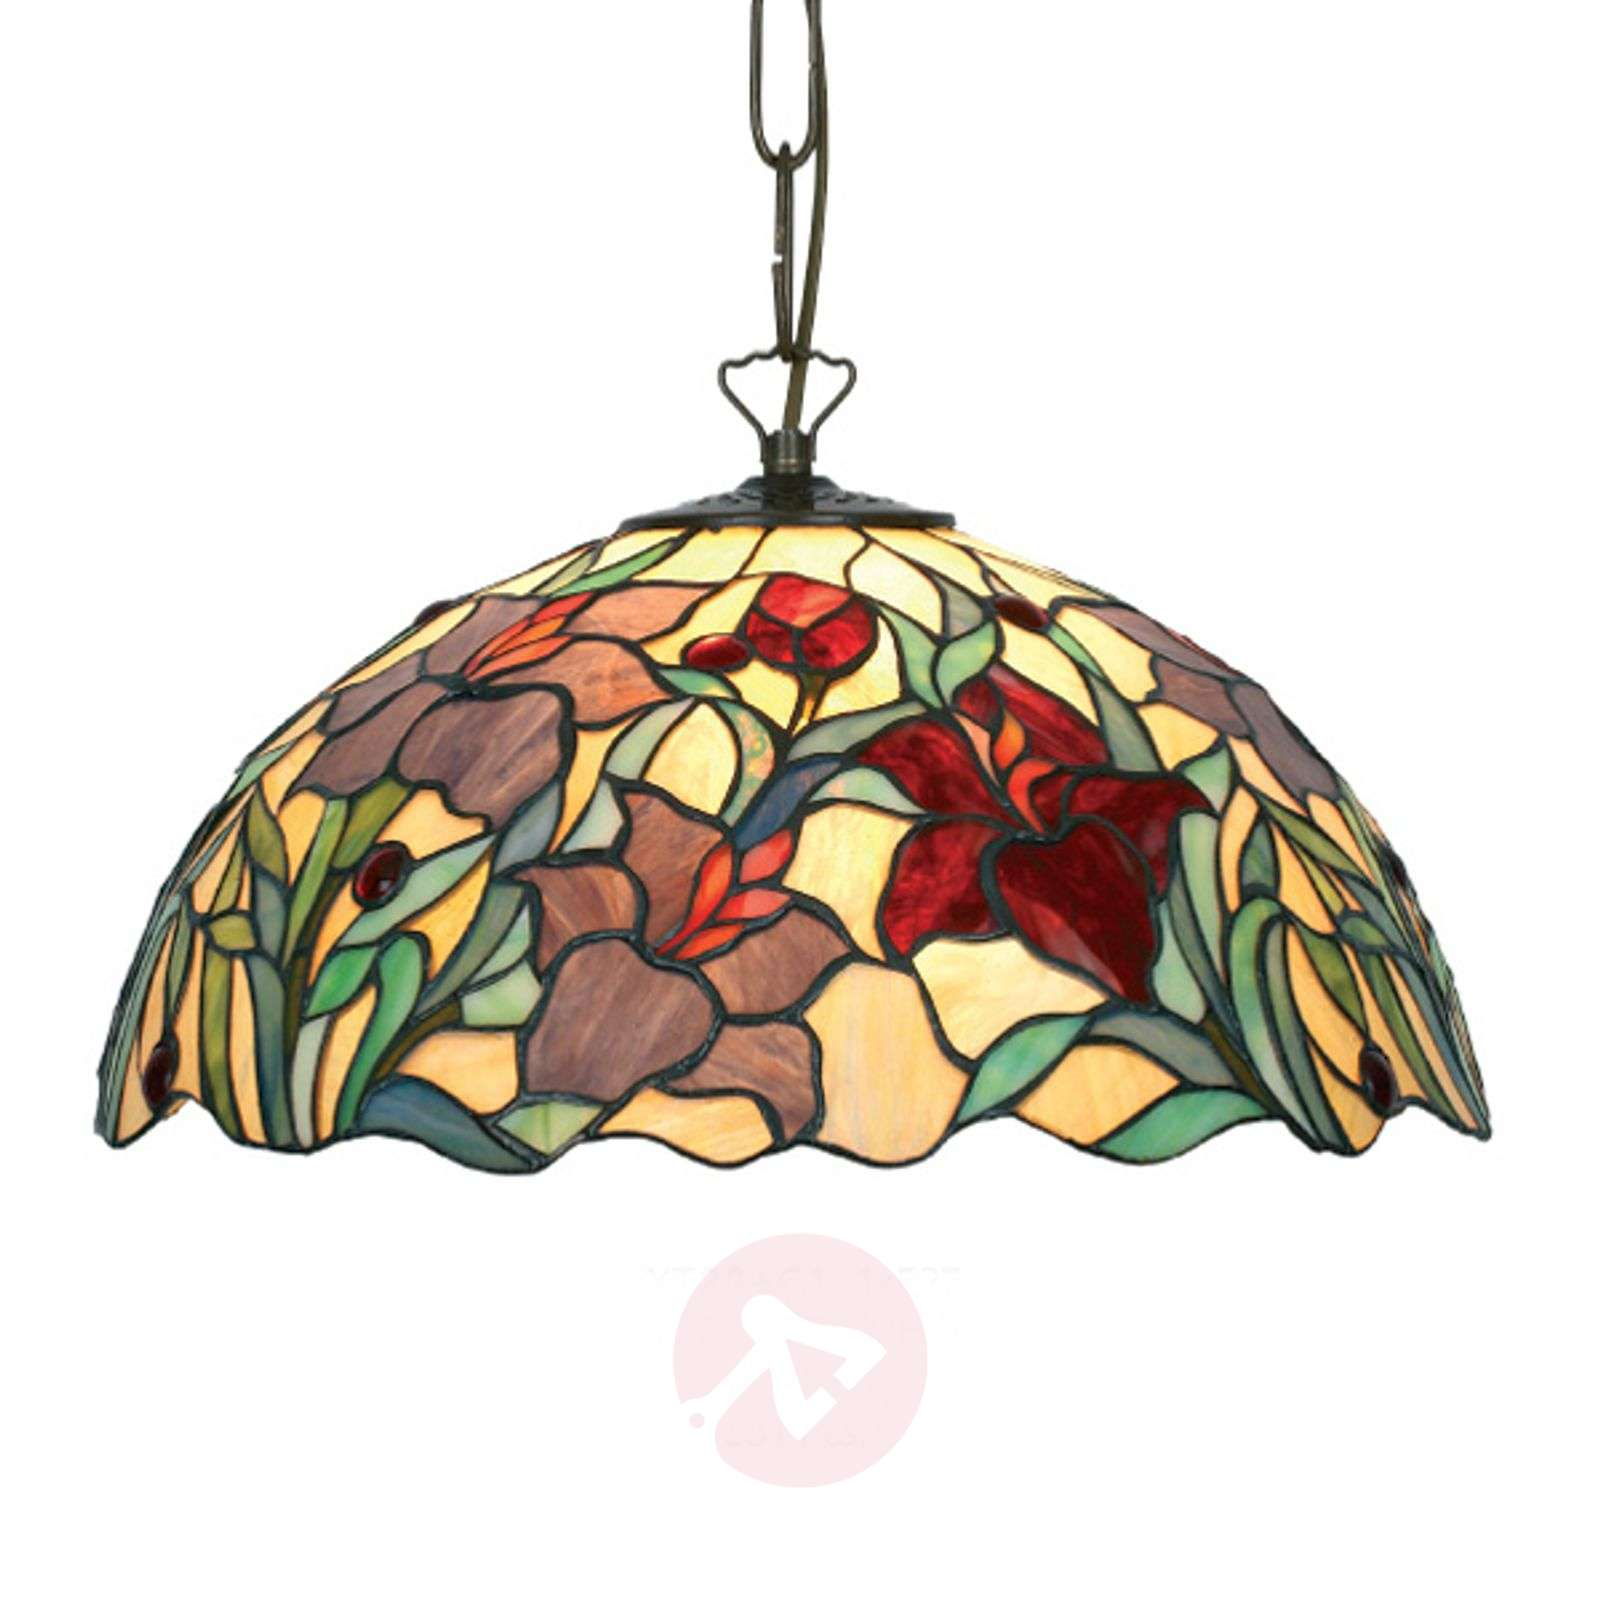 Mooie hanglamp Athina in Tiffany-stijl-1032136X-01